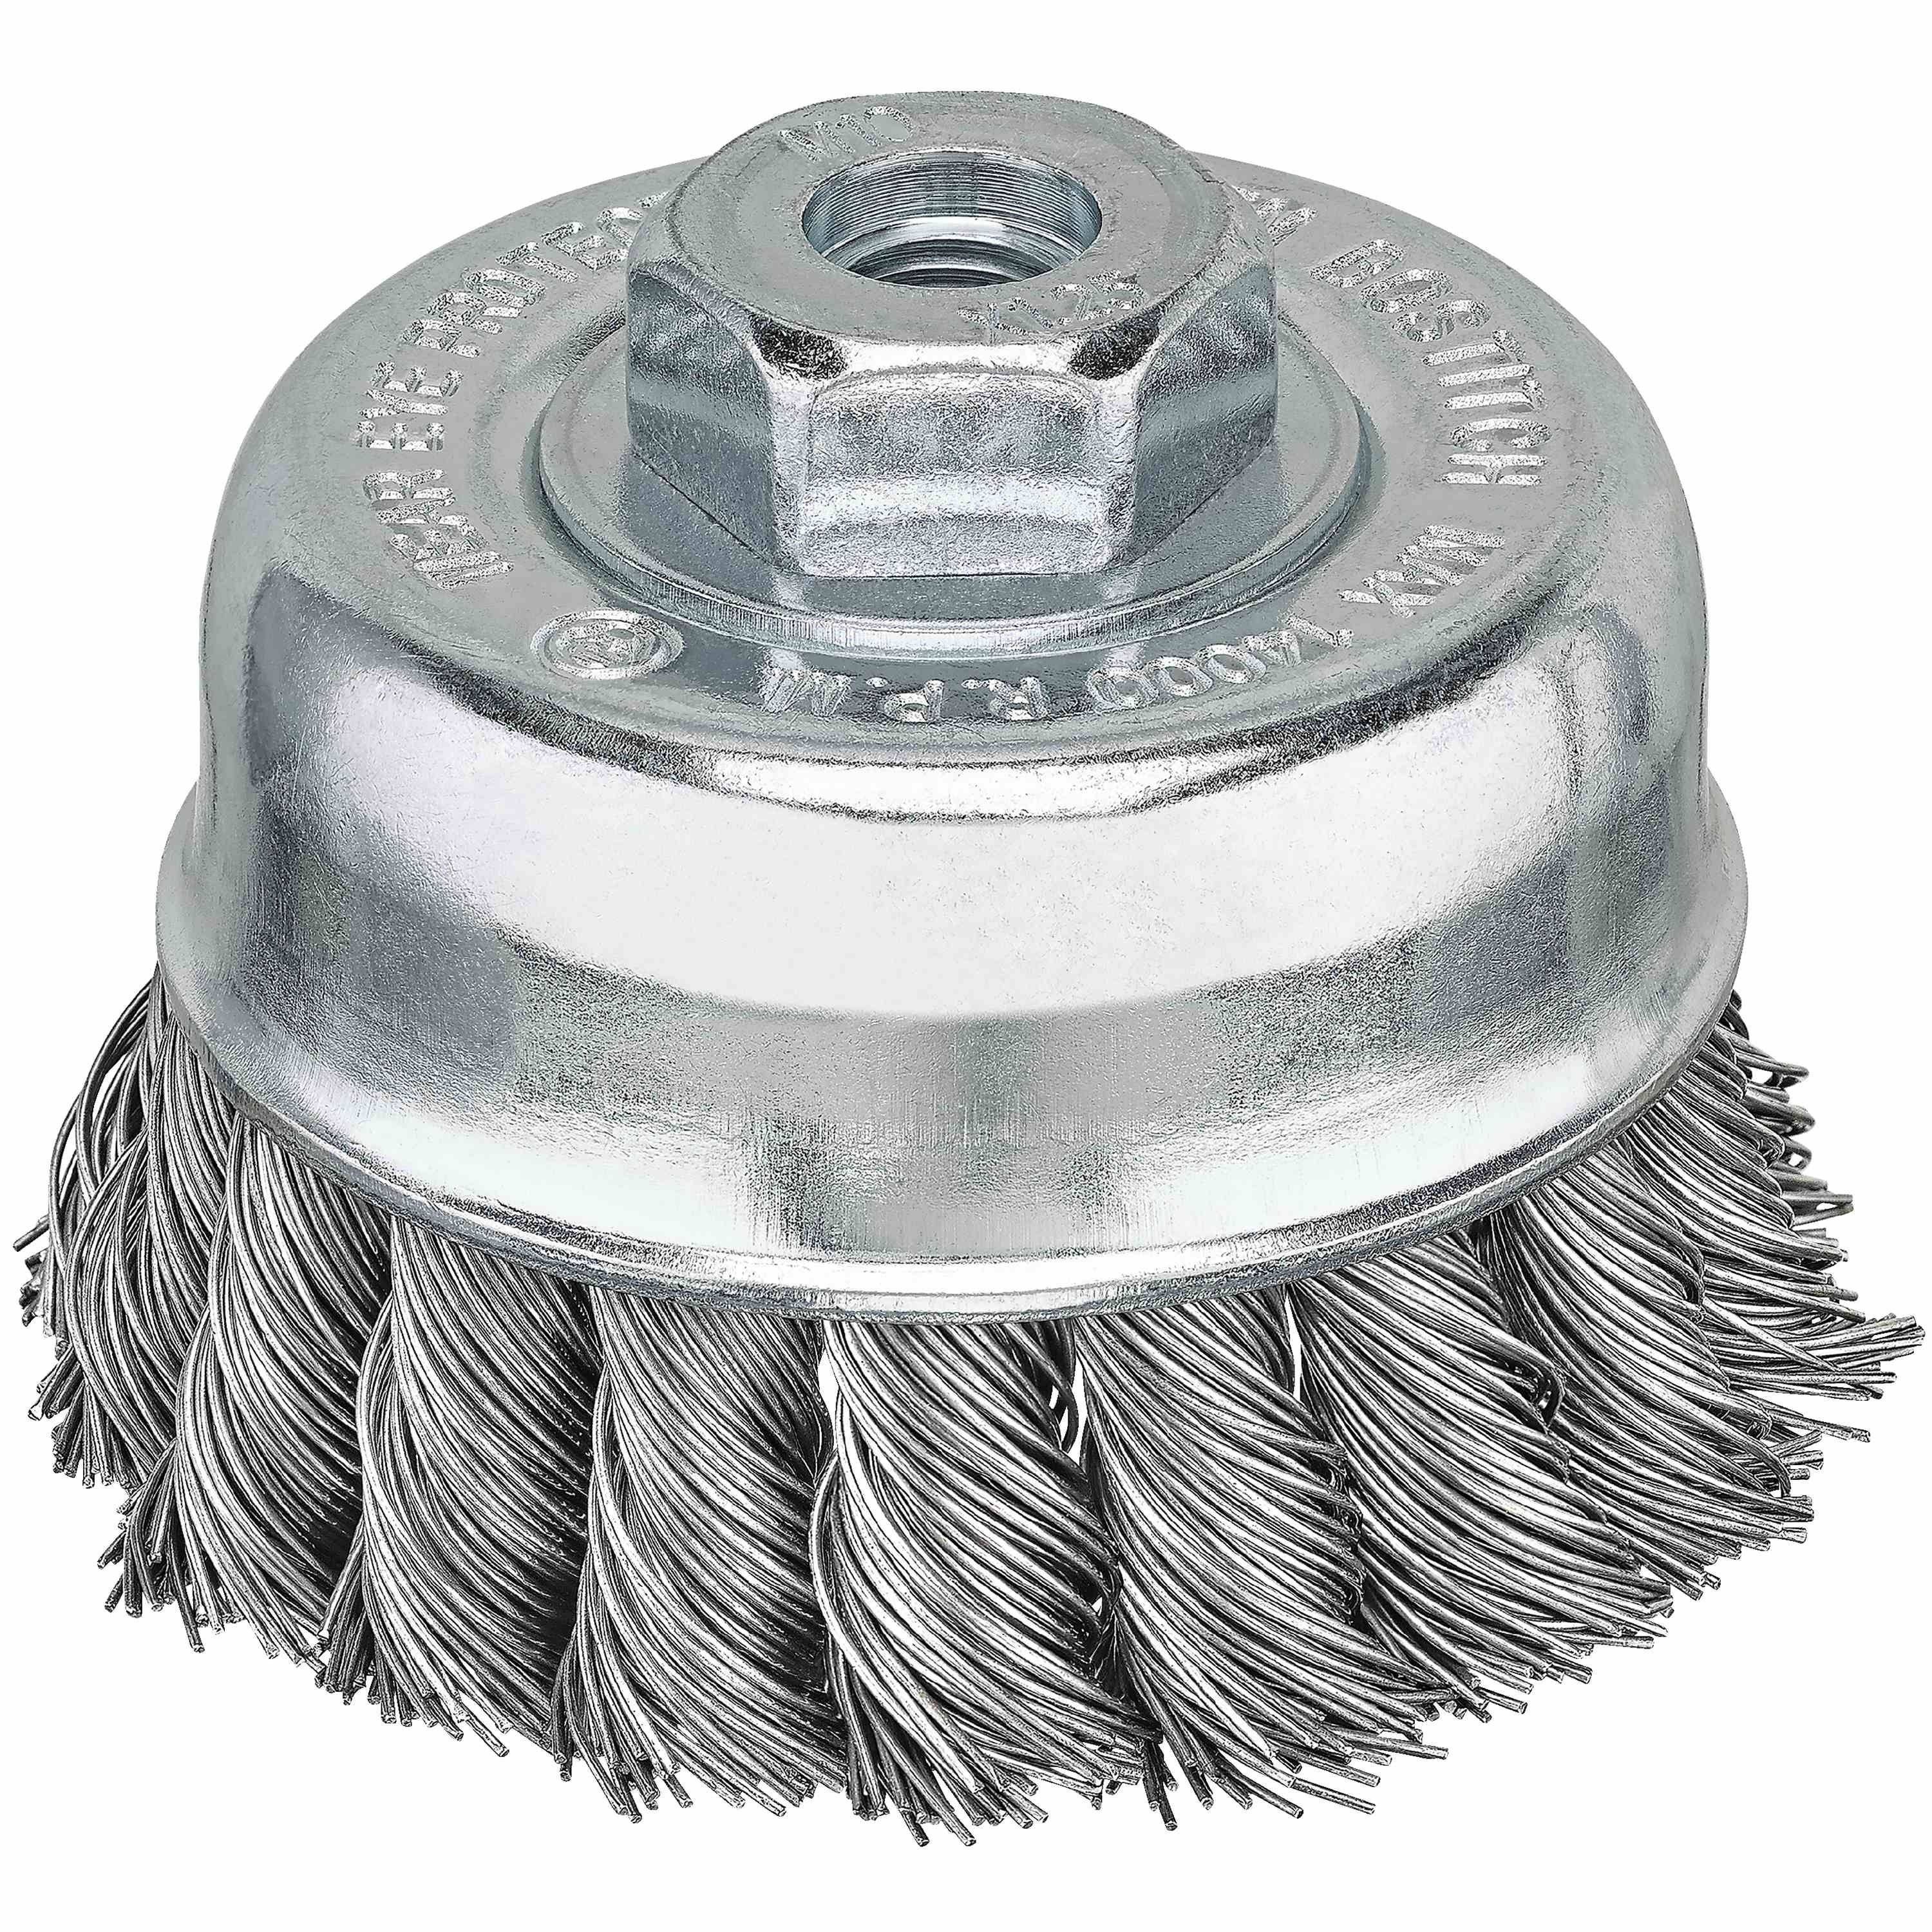 Bostitch - Carbon Knot Cup Brush - BSA4915M